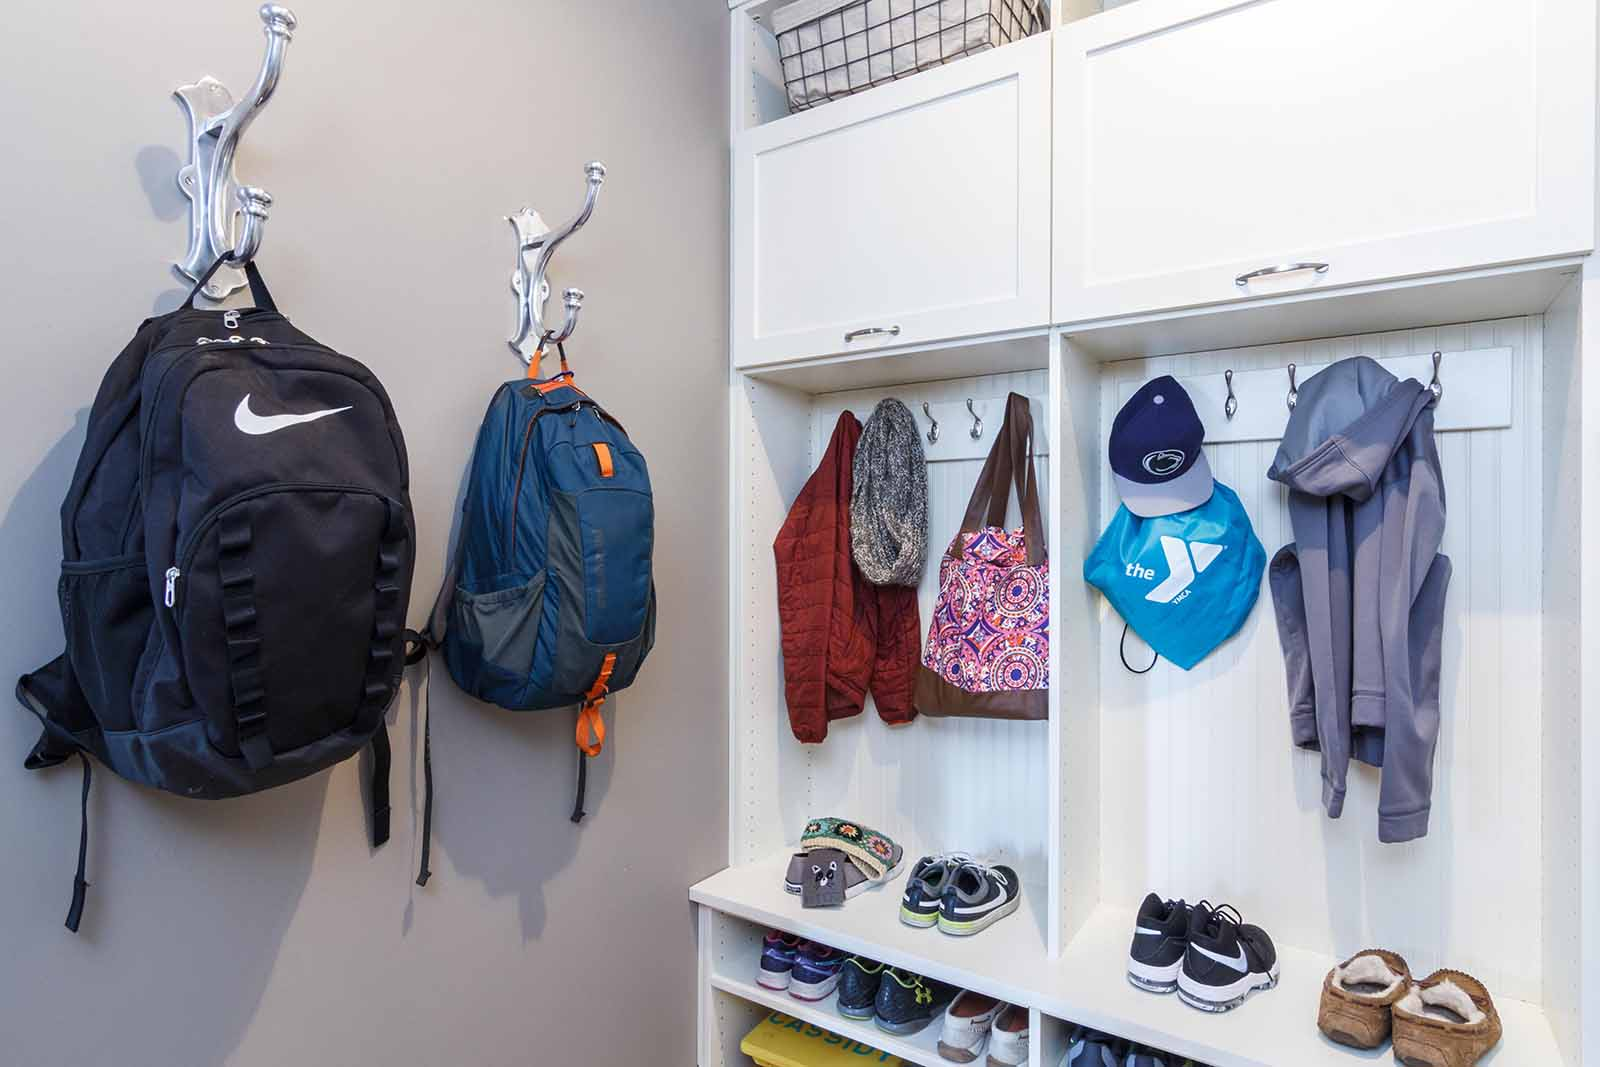 Mudroom neatly organized with backpacks hanging on hooks